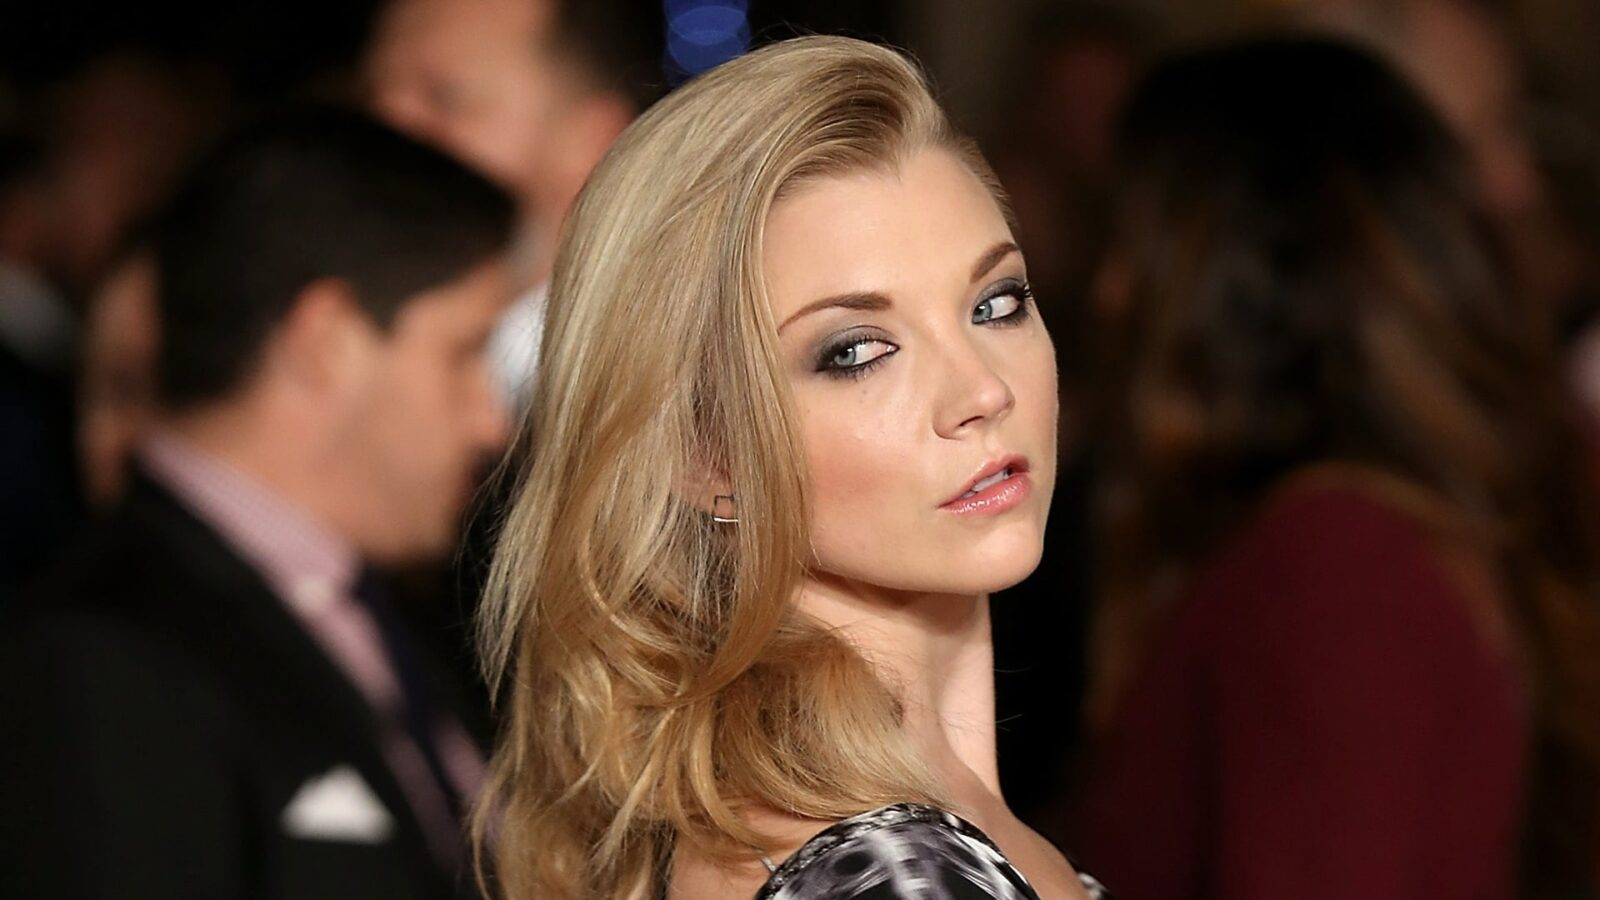 image Natalie dormer how to date me